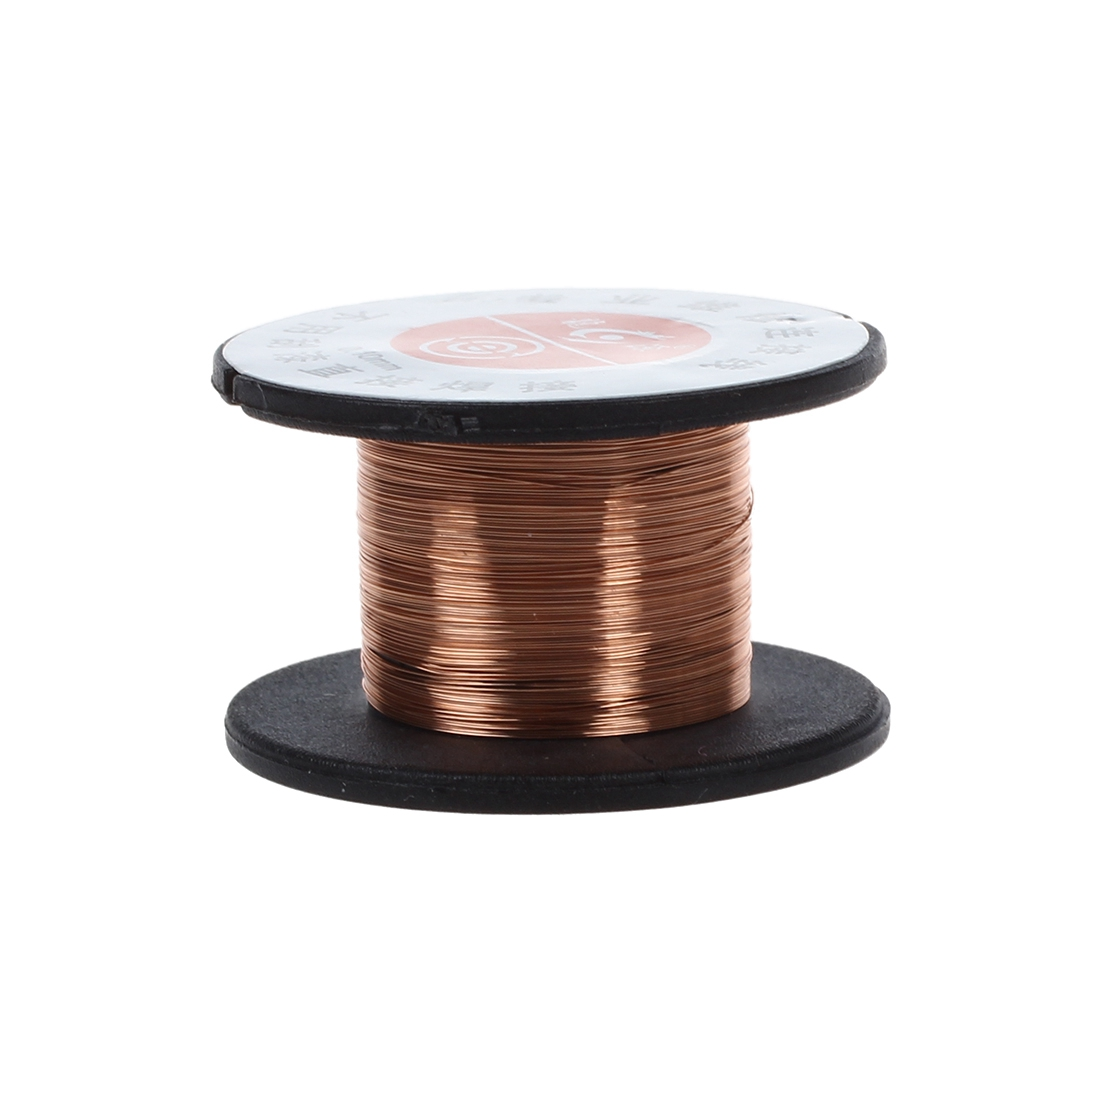 DSHA New Hot 15m 0.1MM Copper Soldering Solder Enamelled Reel Wire ...